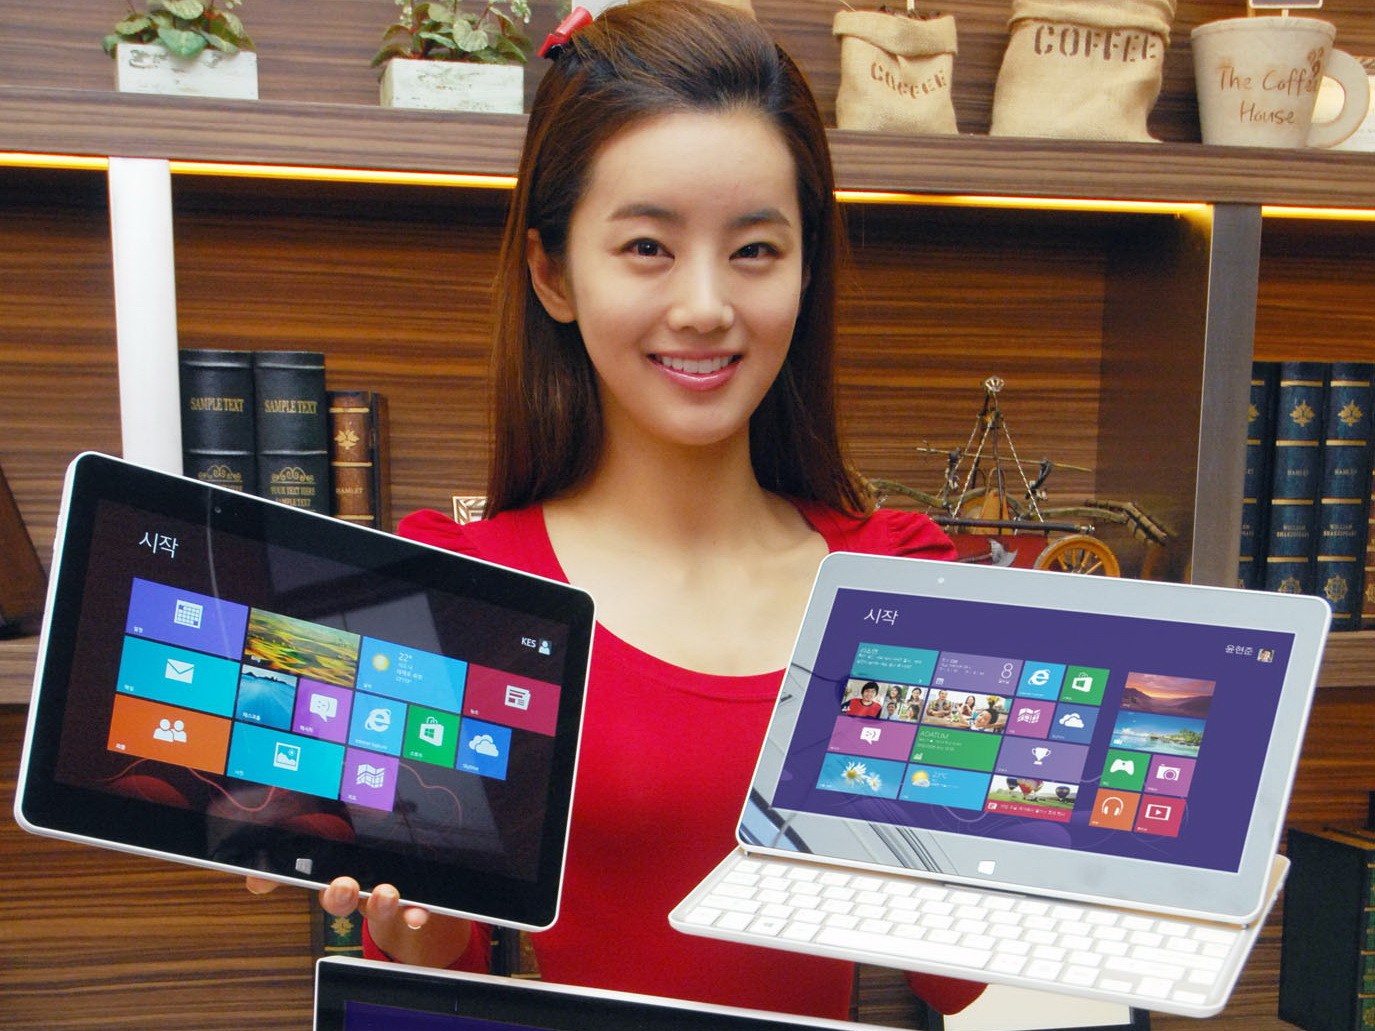 lg 11 6 zoll hybrid tablet h160 mit windows 8 angek ndigt. Black Bedroom Furniture Sets. Home Design Ideas